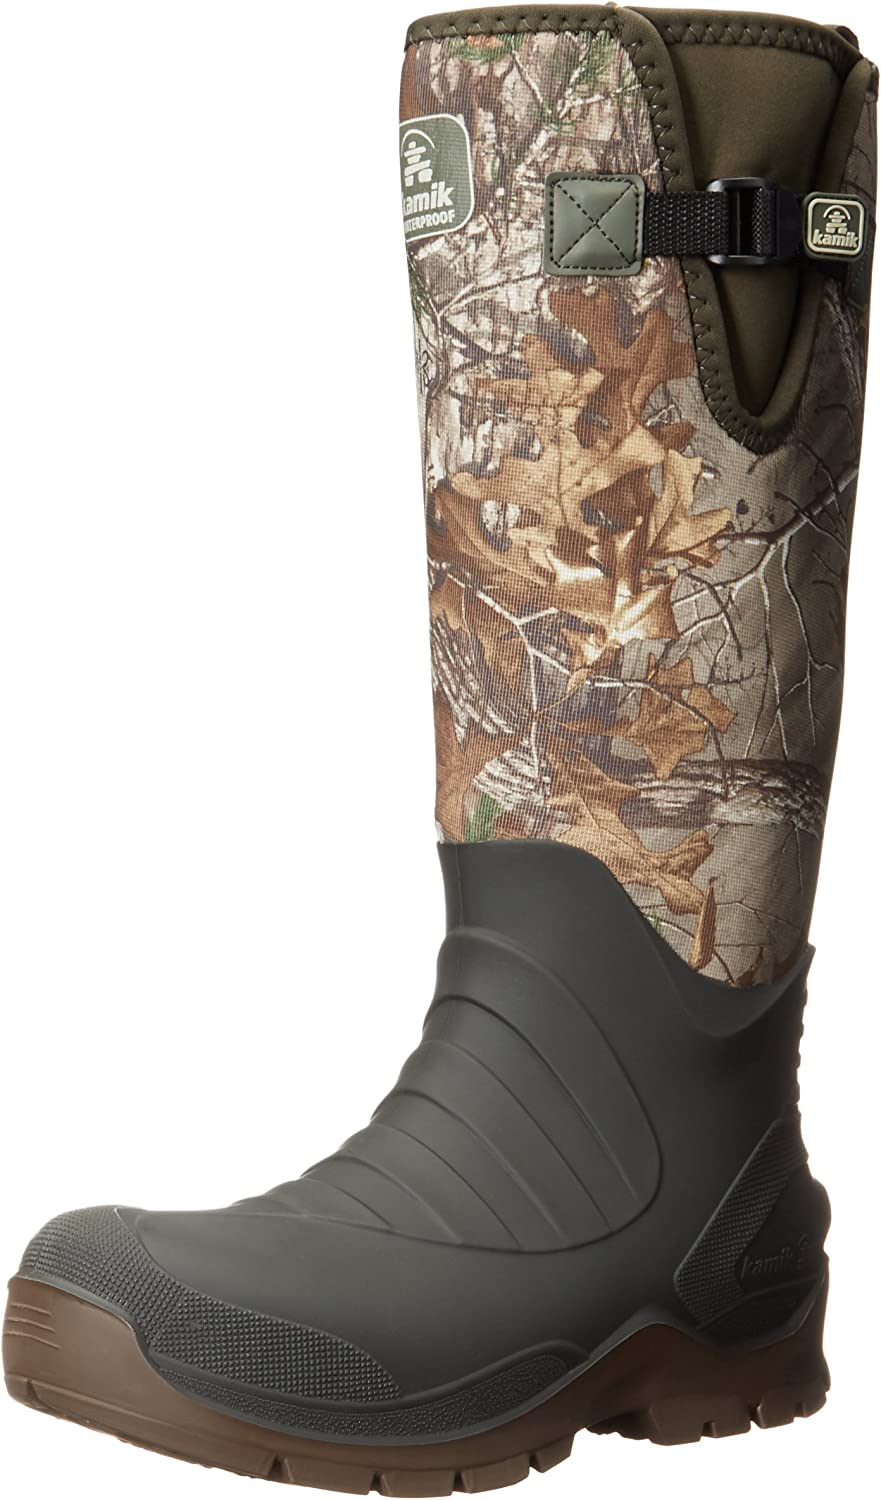 Kamik Men's Trailman Hunting shoes, Realtree Xtra, 9 D-Medium